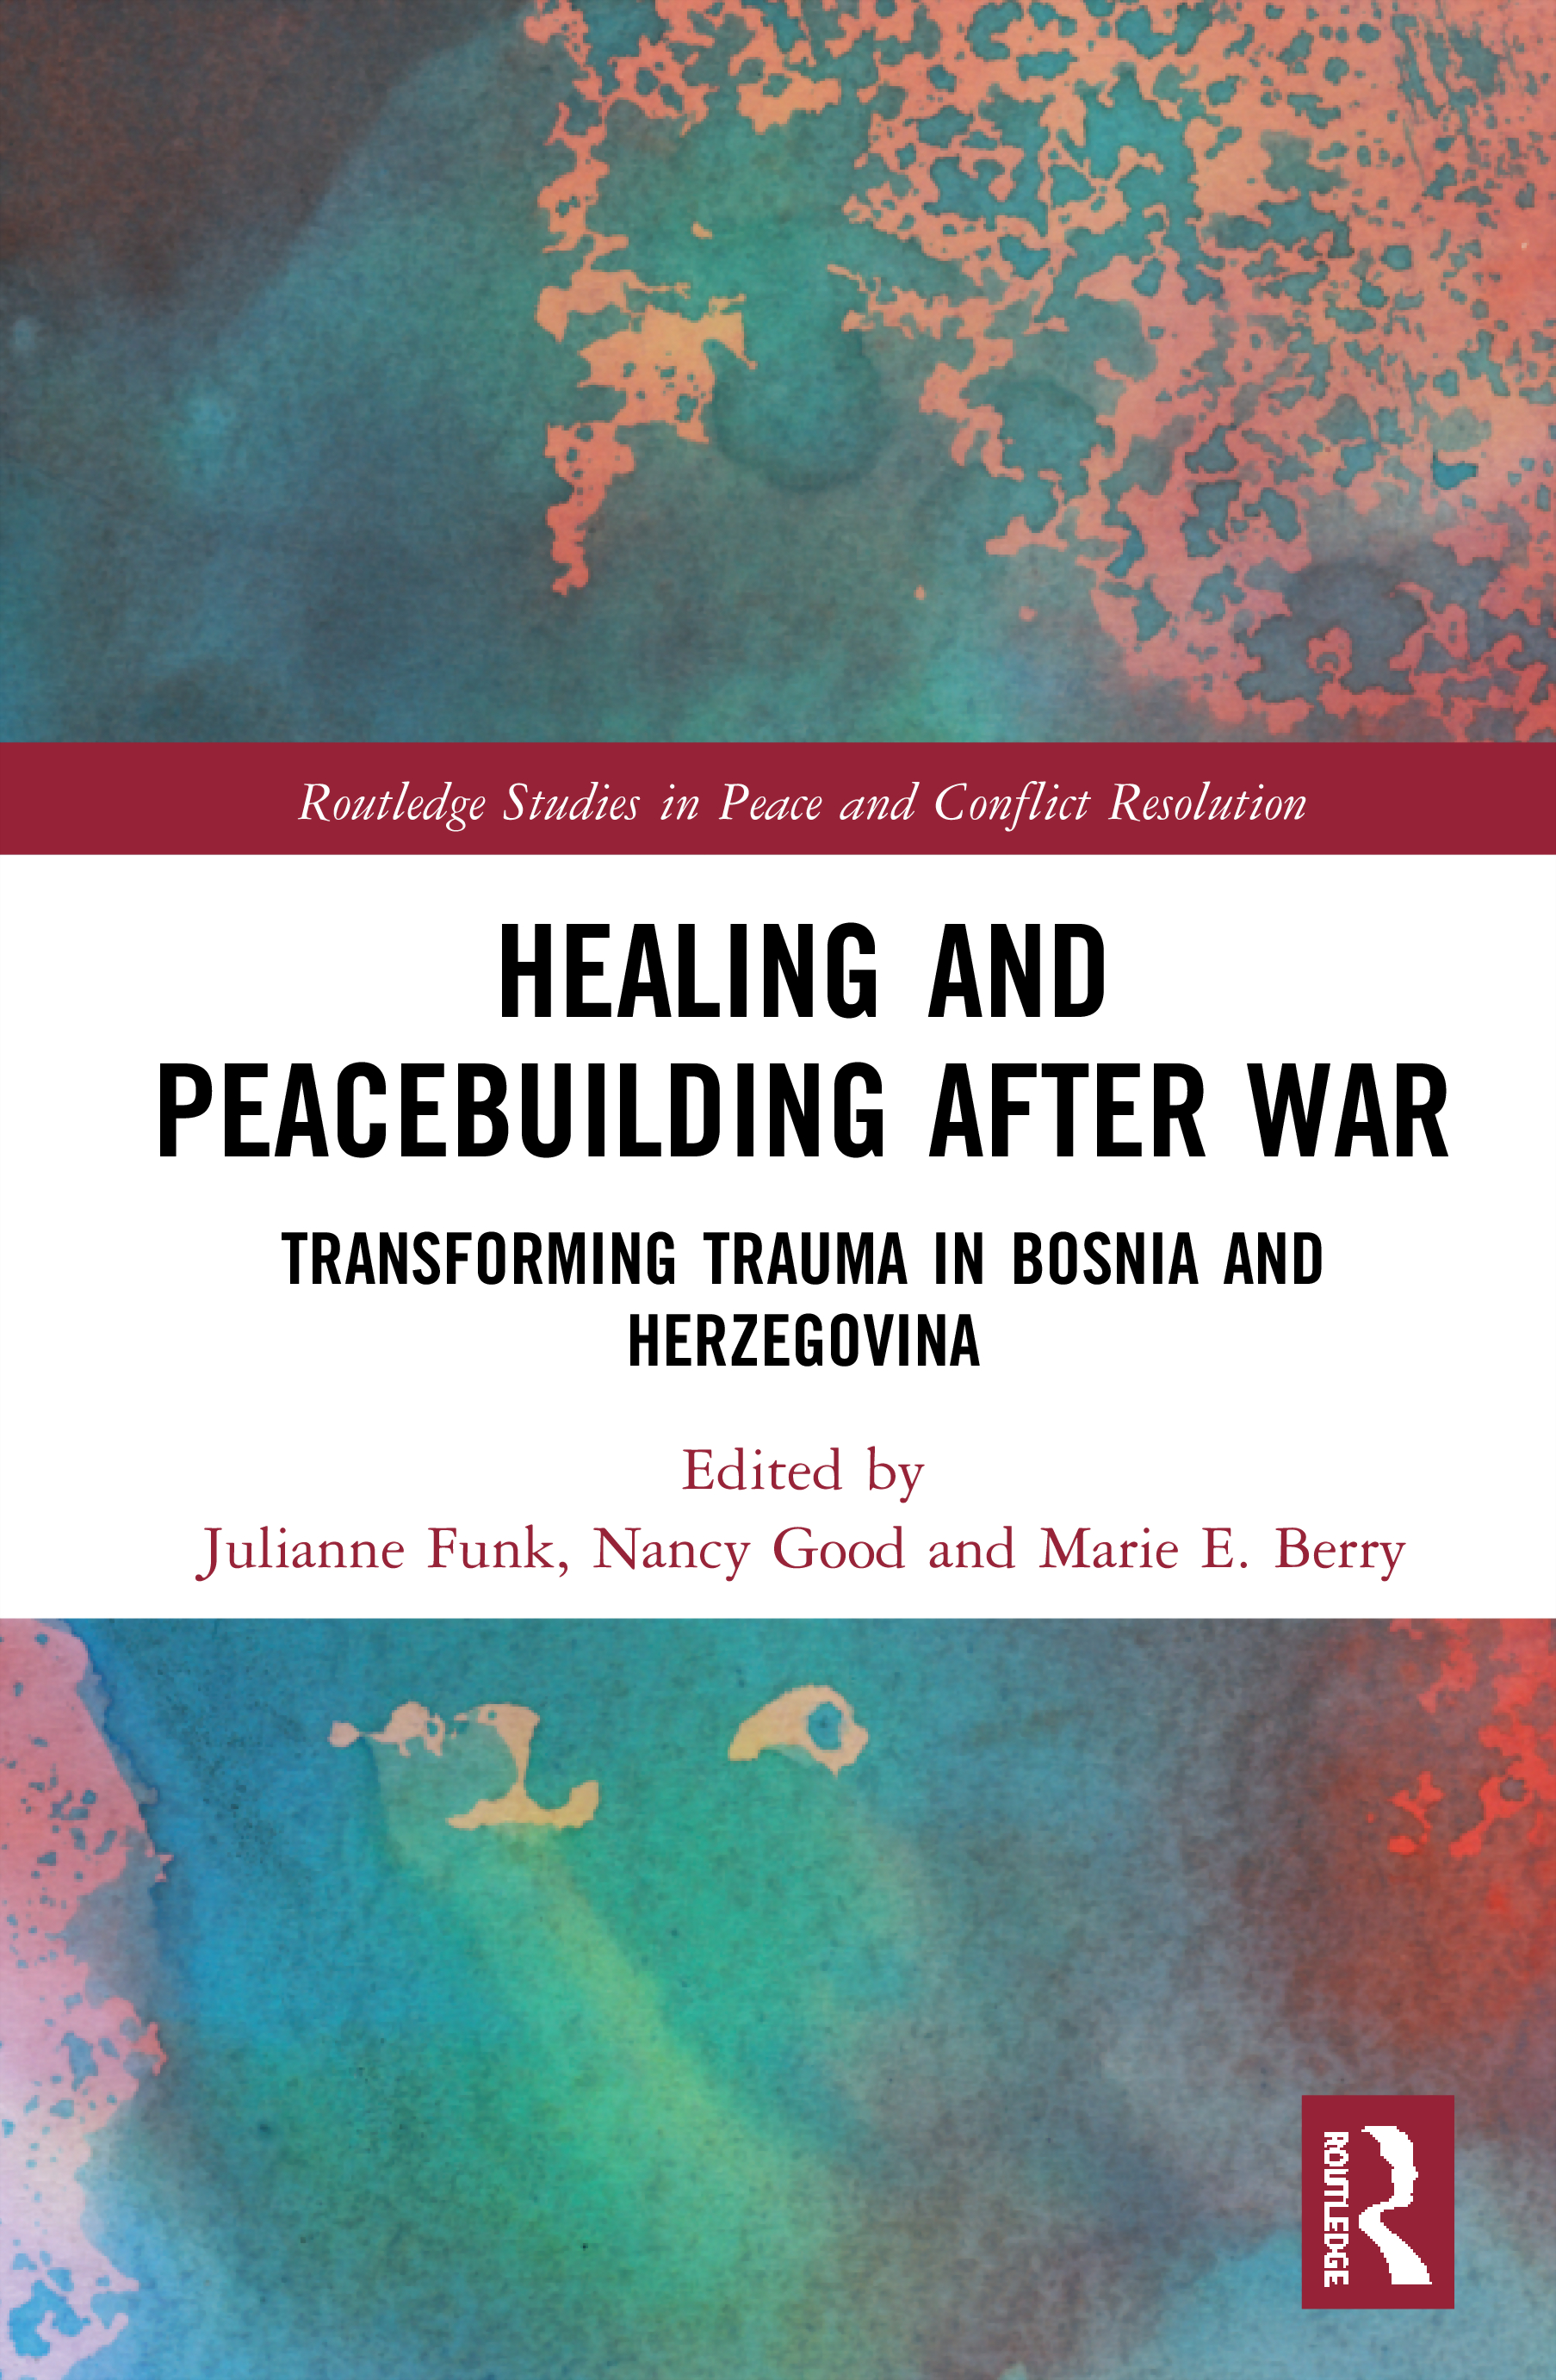 Healing and Peacebuilding after War: Transforming Trauma in Bosnia and Herzegovina book cover